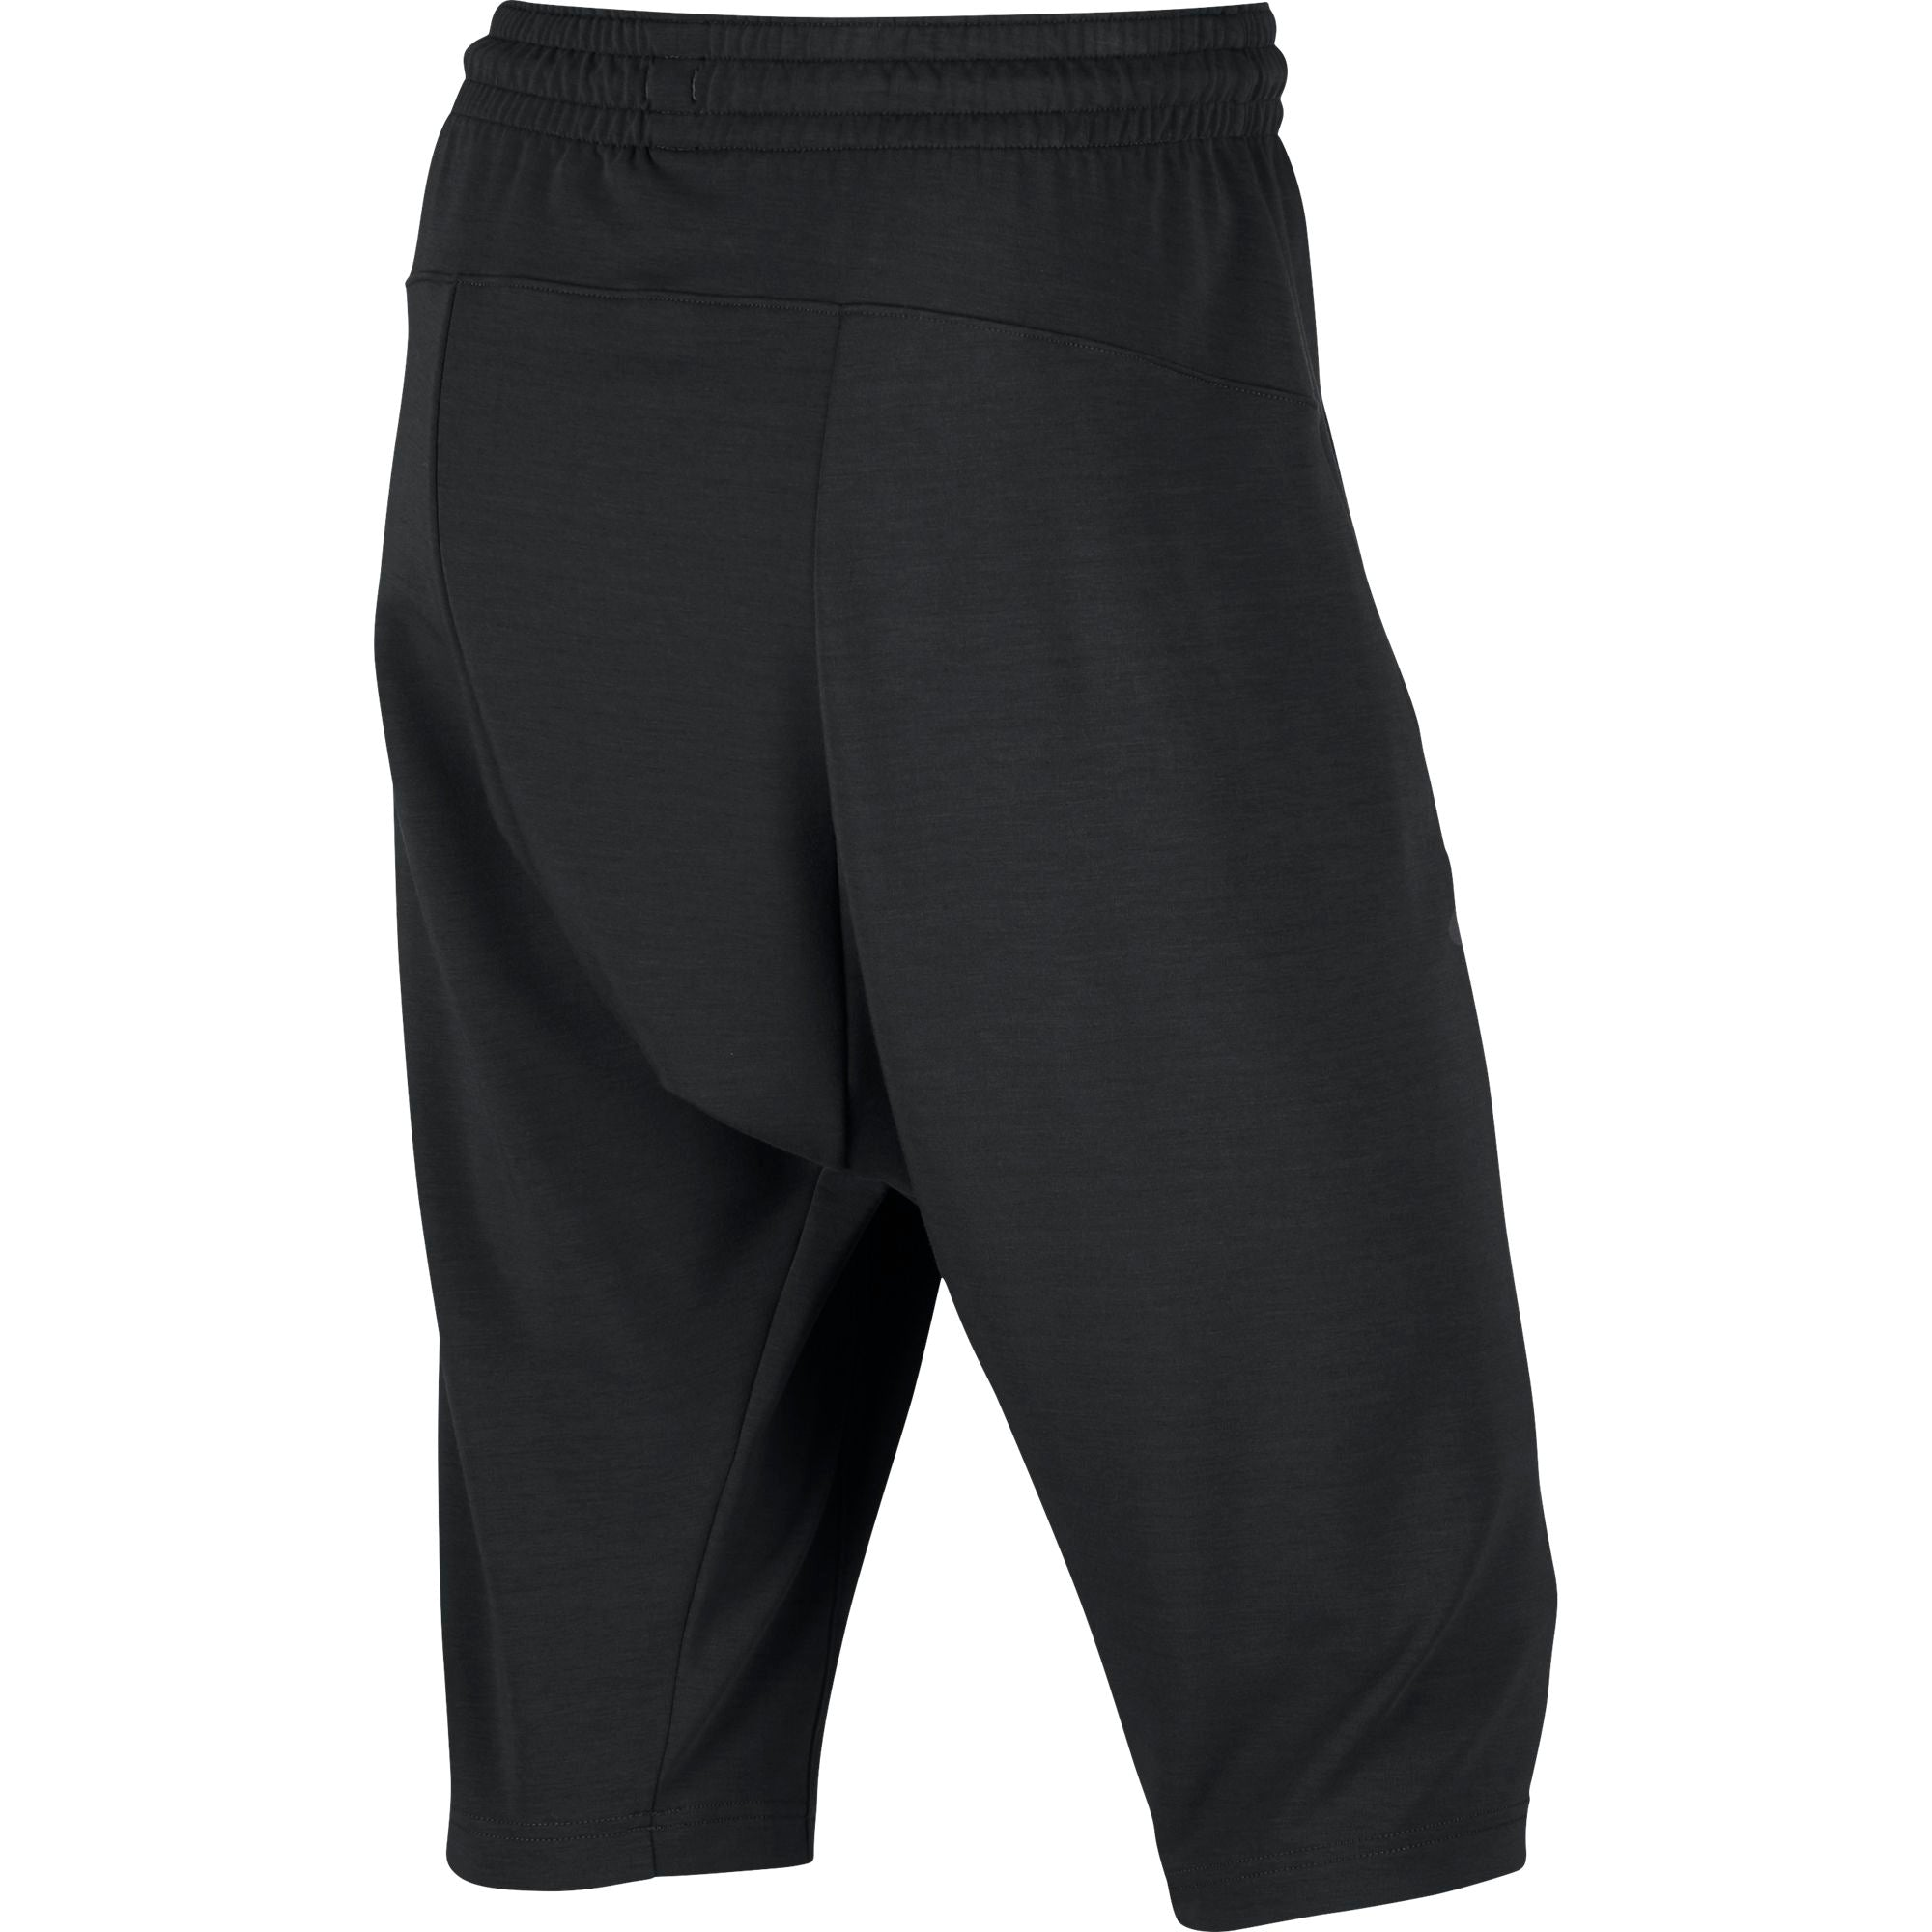 Nike Basketball Dry Shorts - Black Heather/Anthracite/Matte Silver